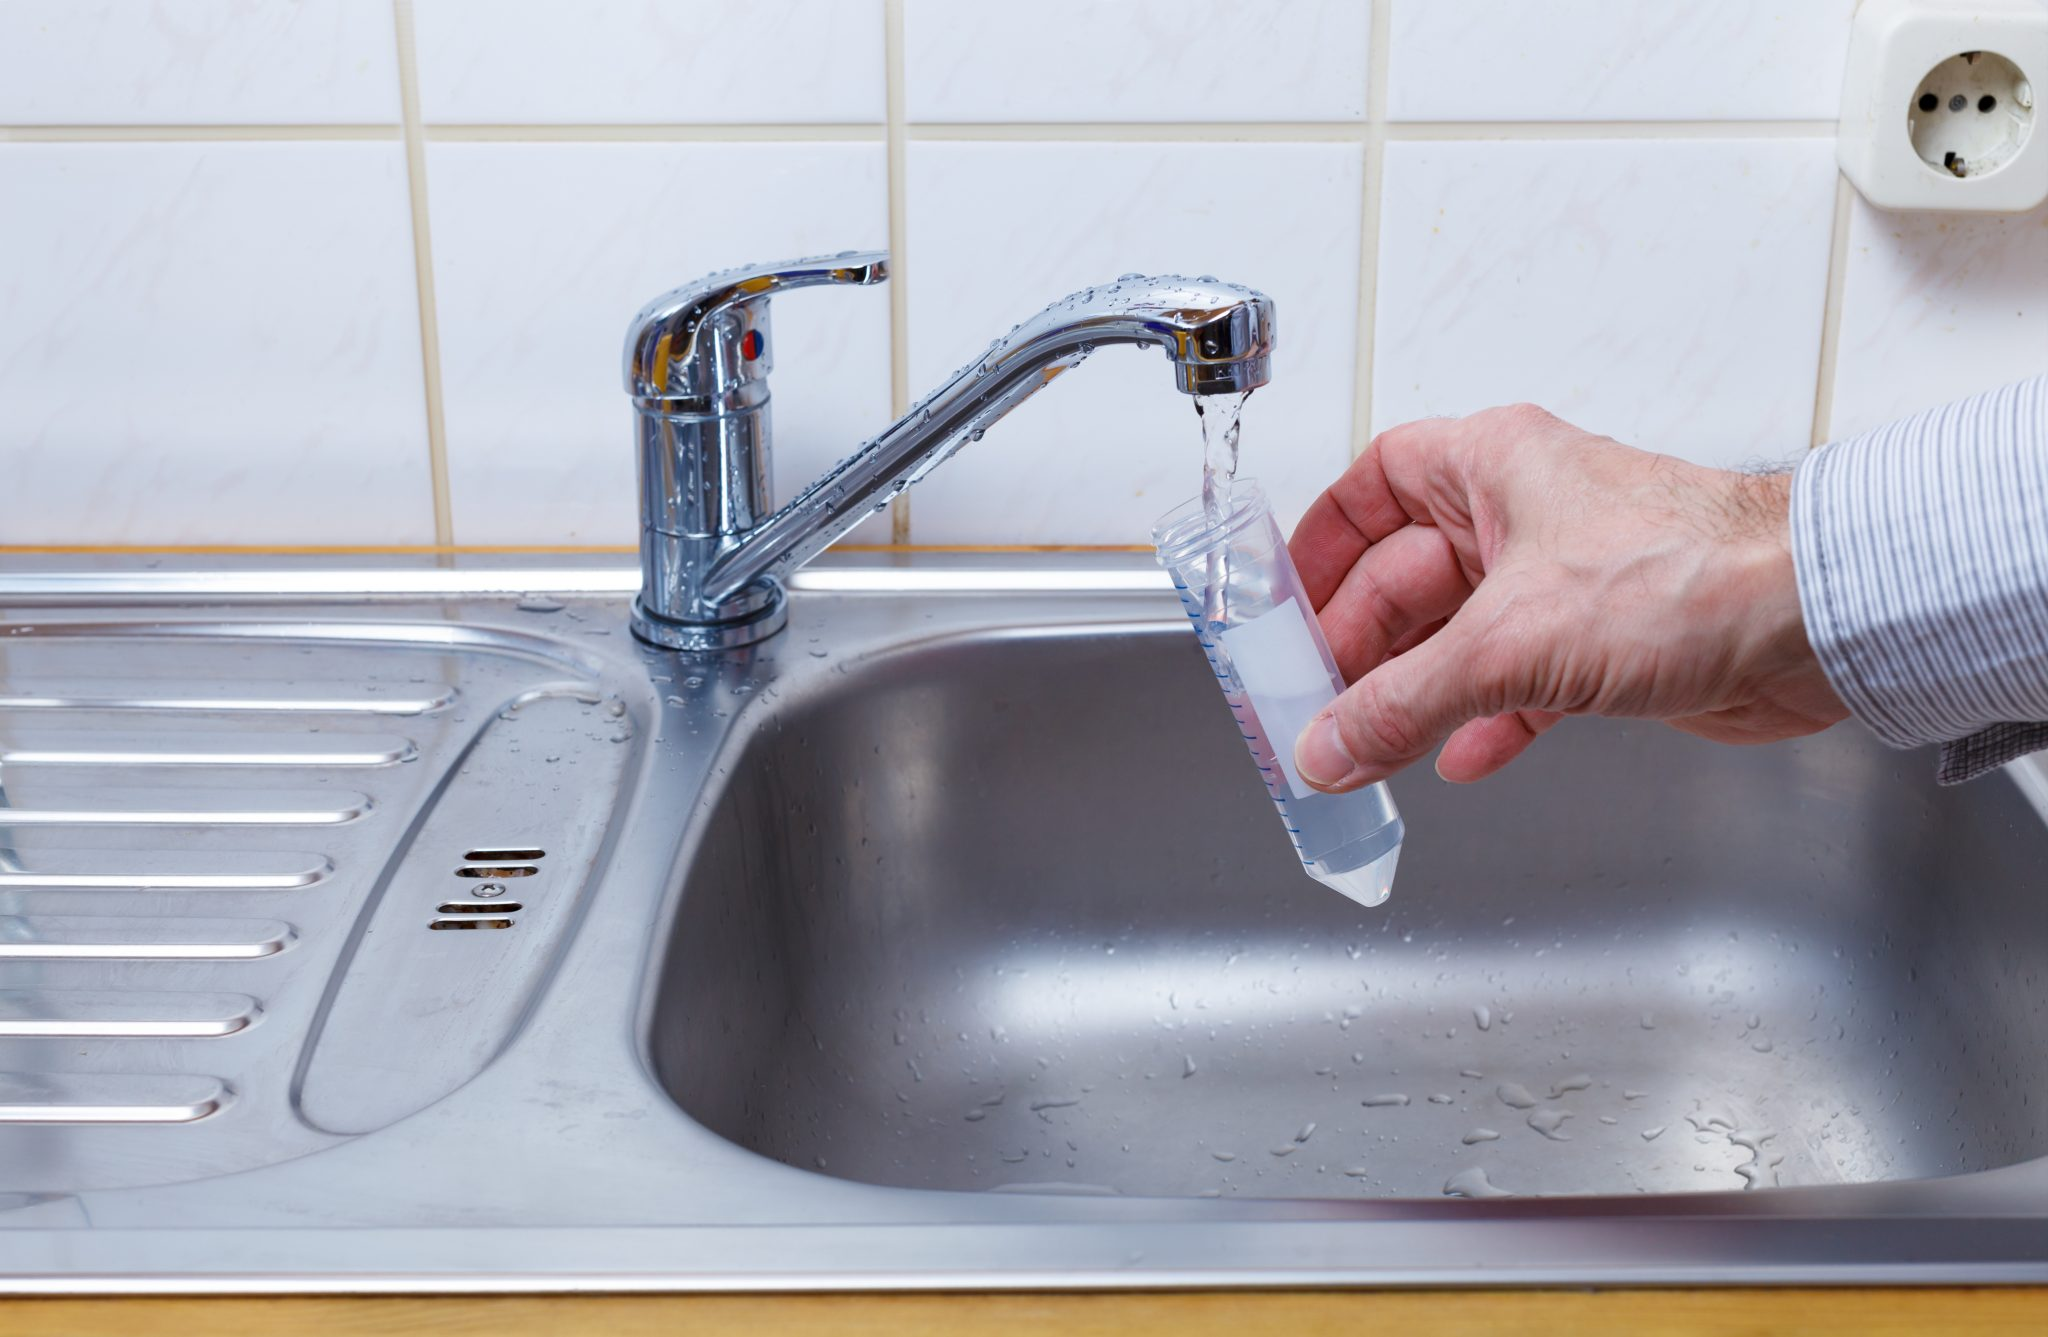 drinking water safety is a top priority for Americans.